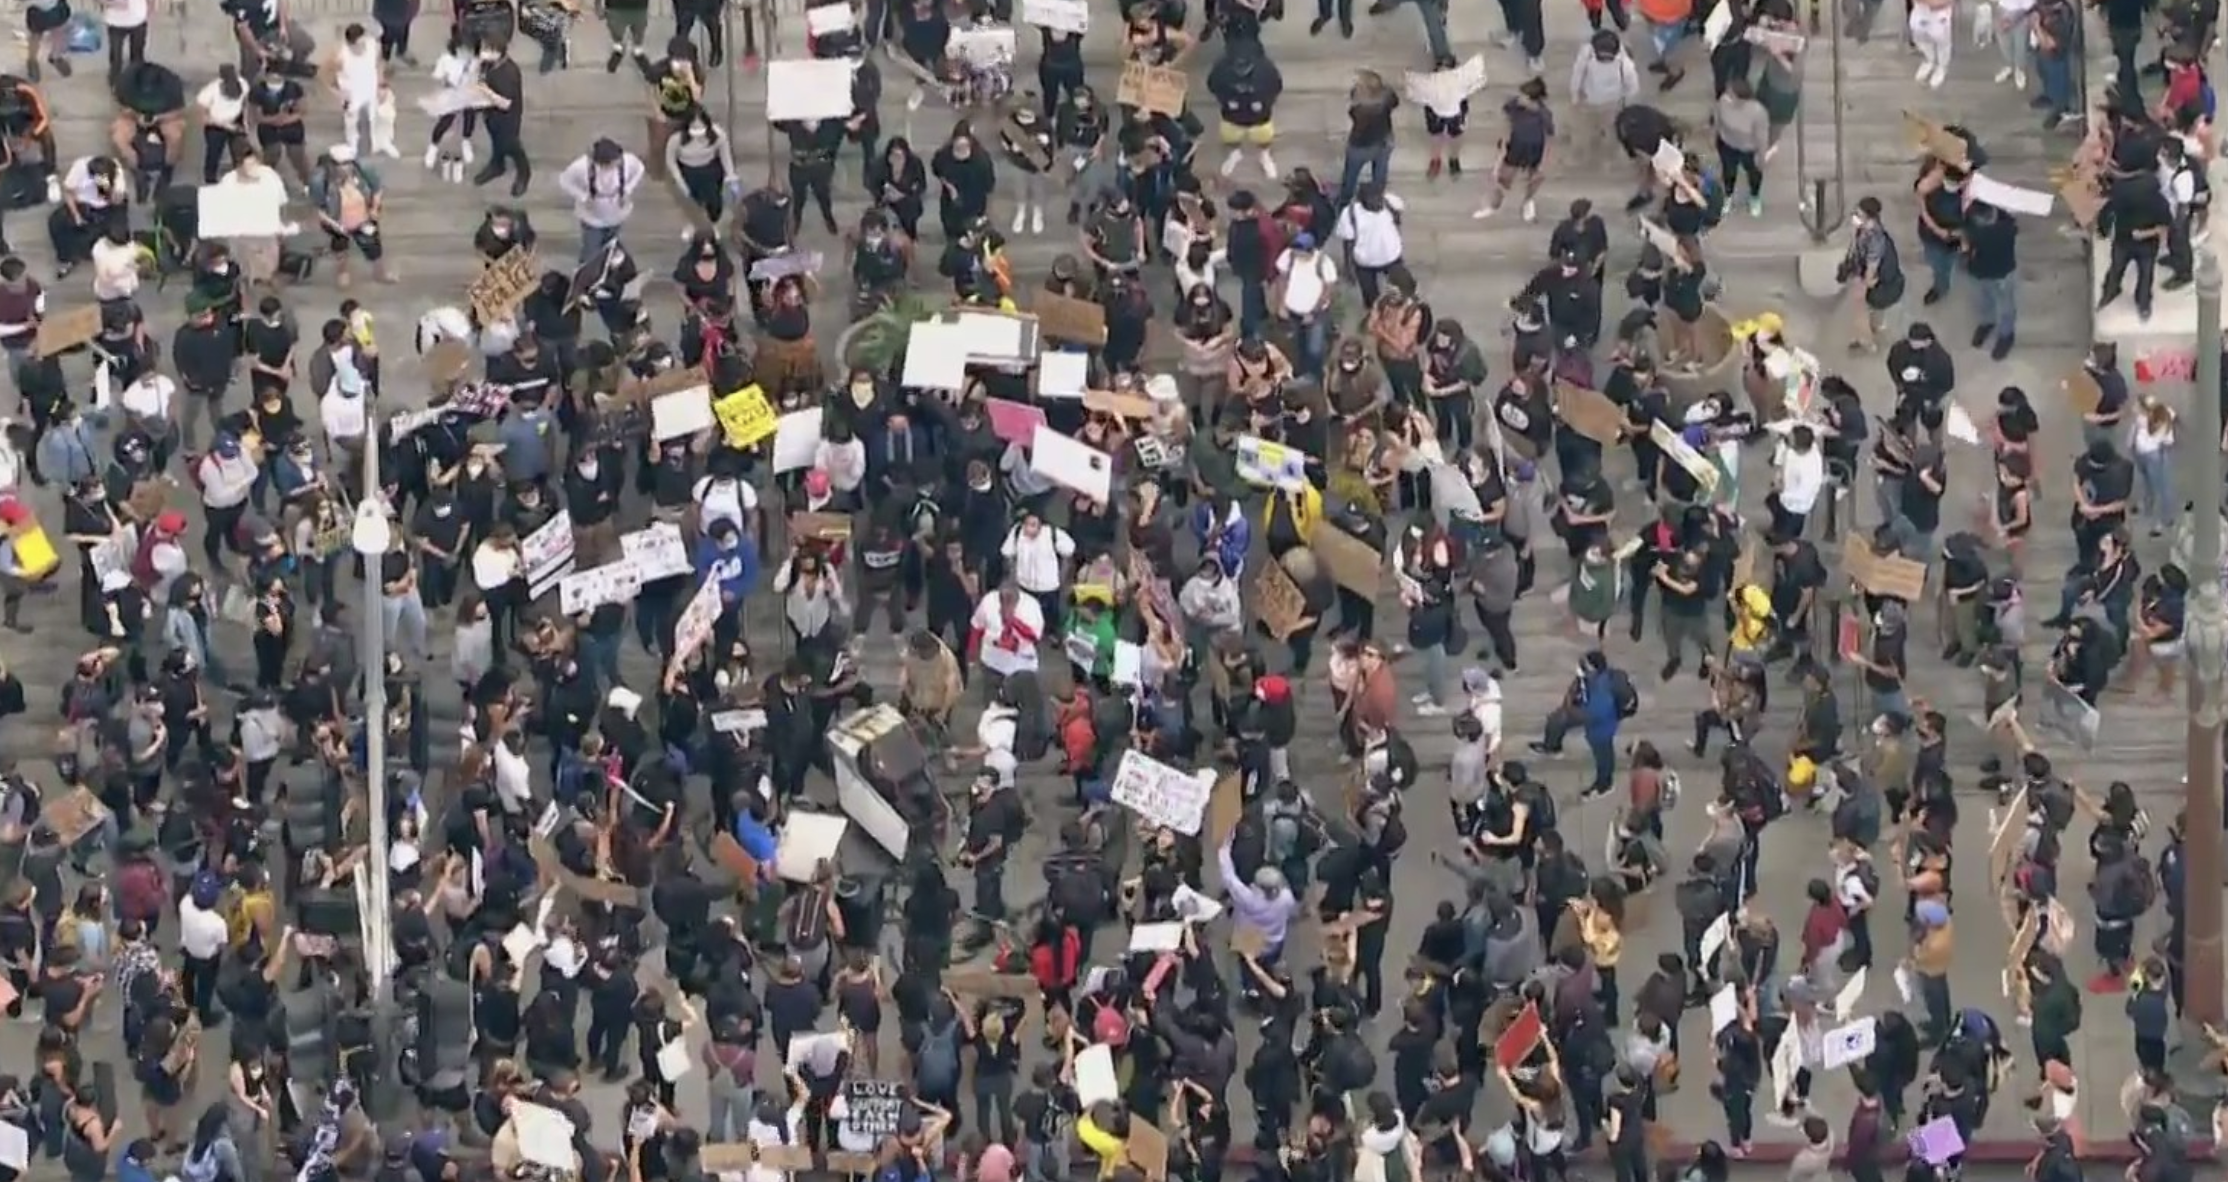 Protests in downtown L.A. on June 5, 2020. (KTLA)